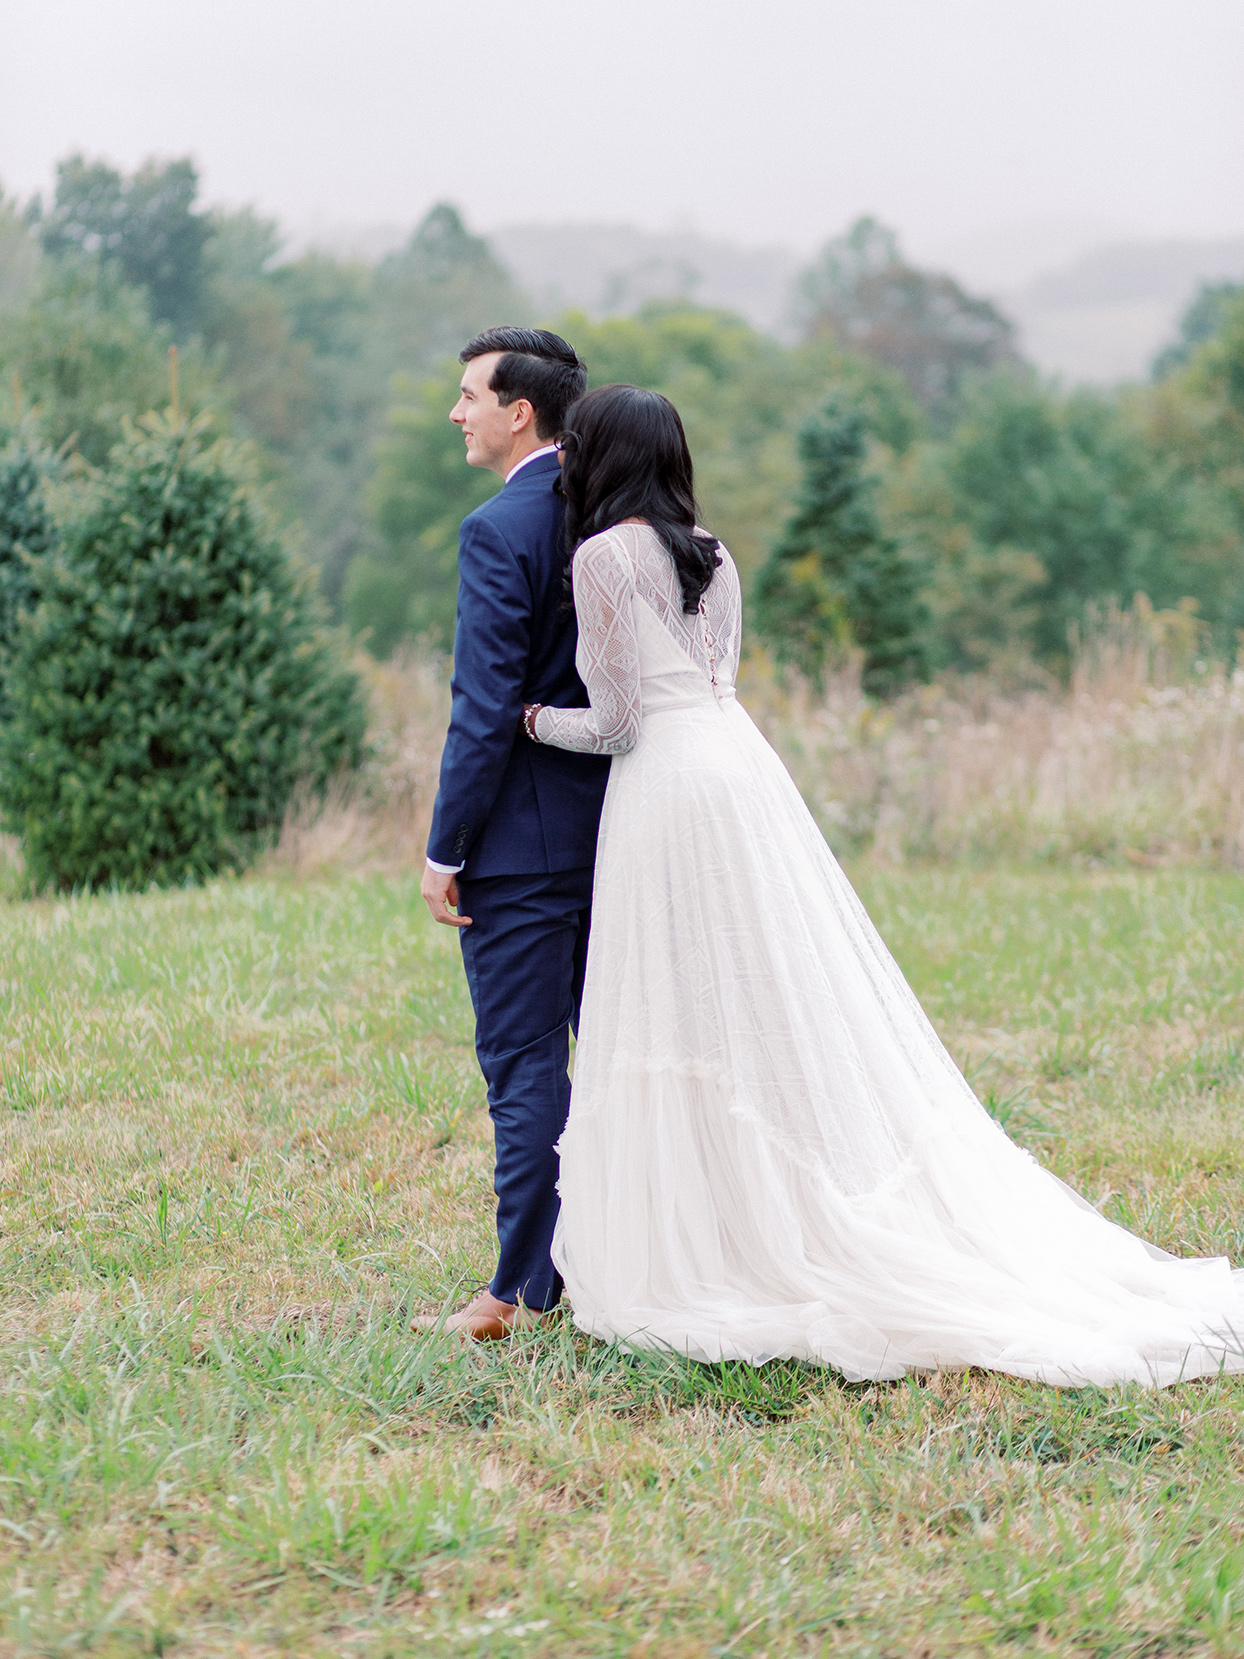 rebecca isaac wedding couple first look on grassy hill